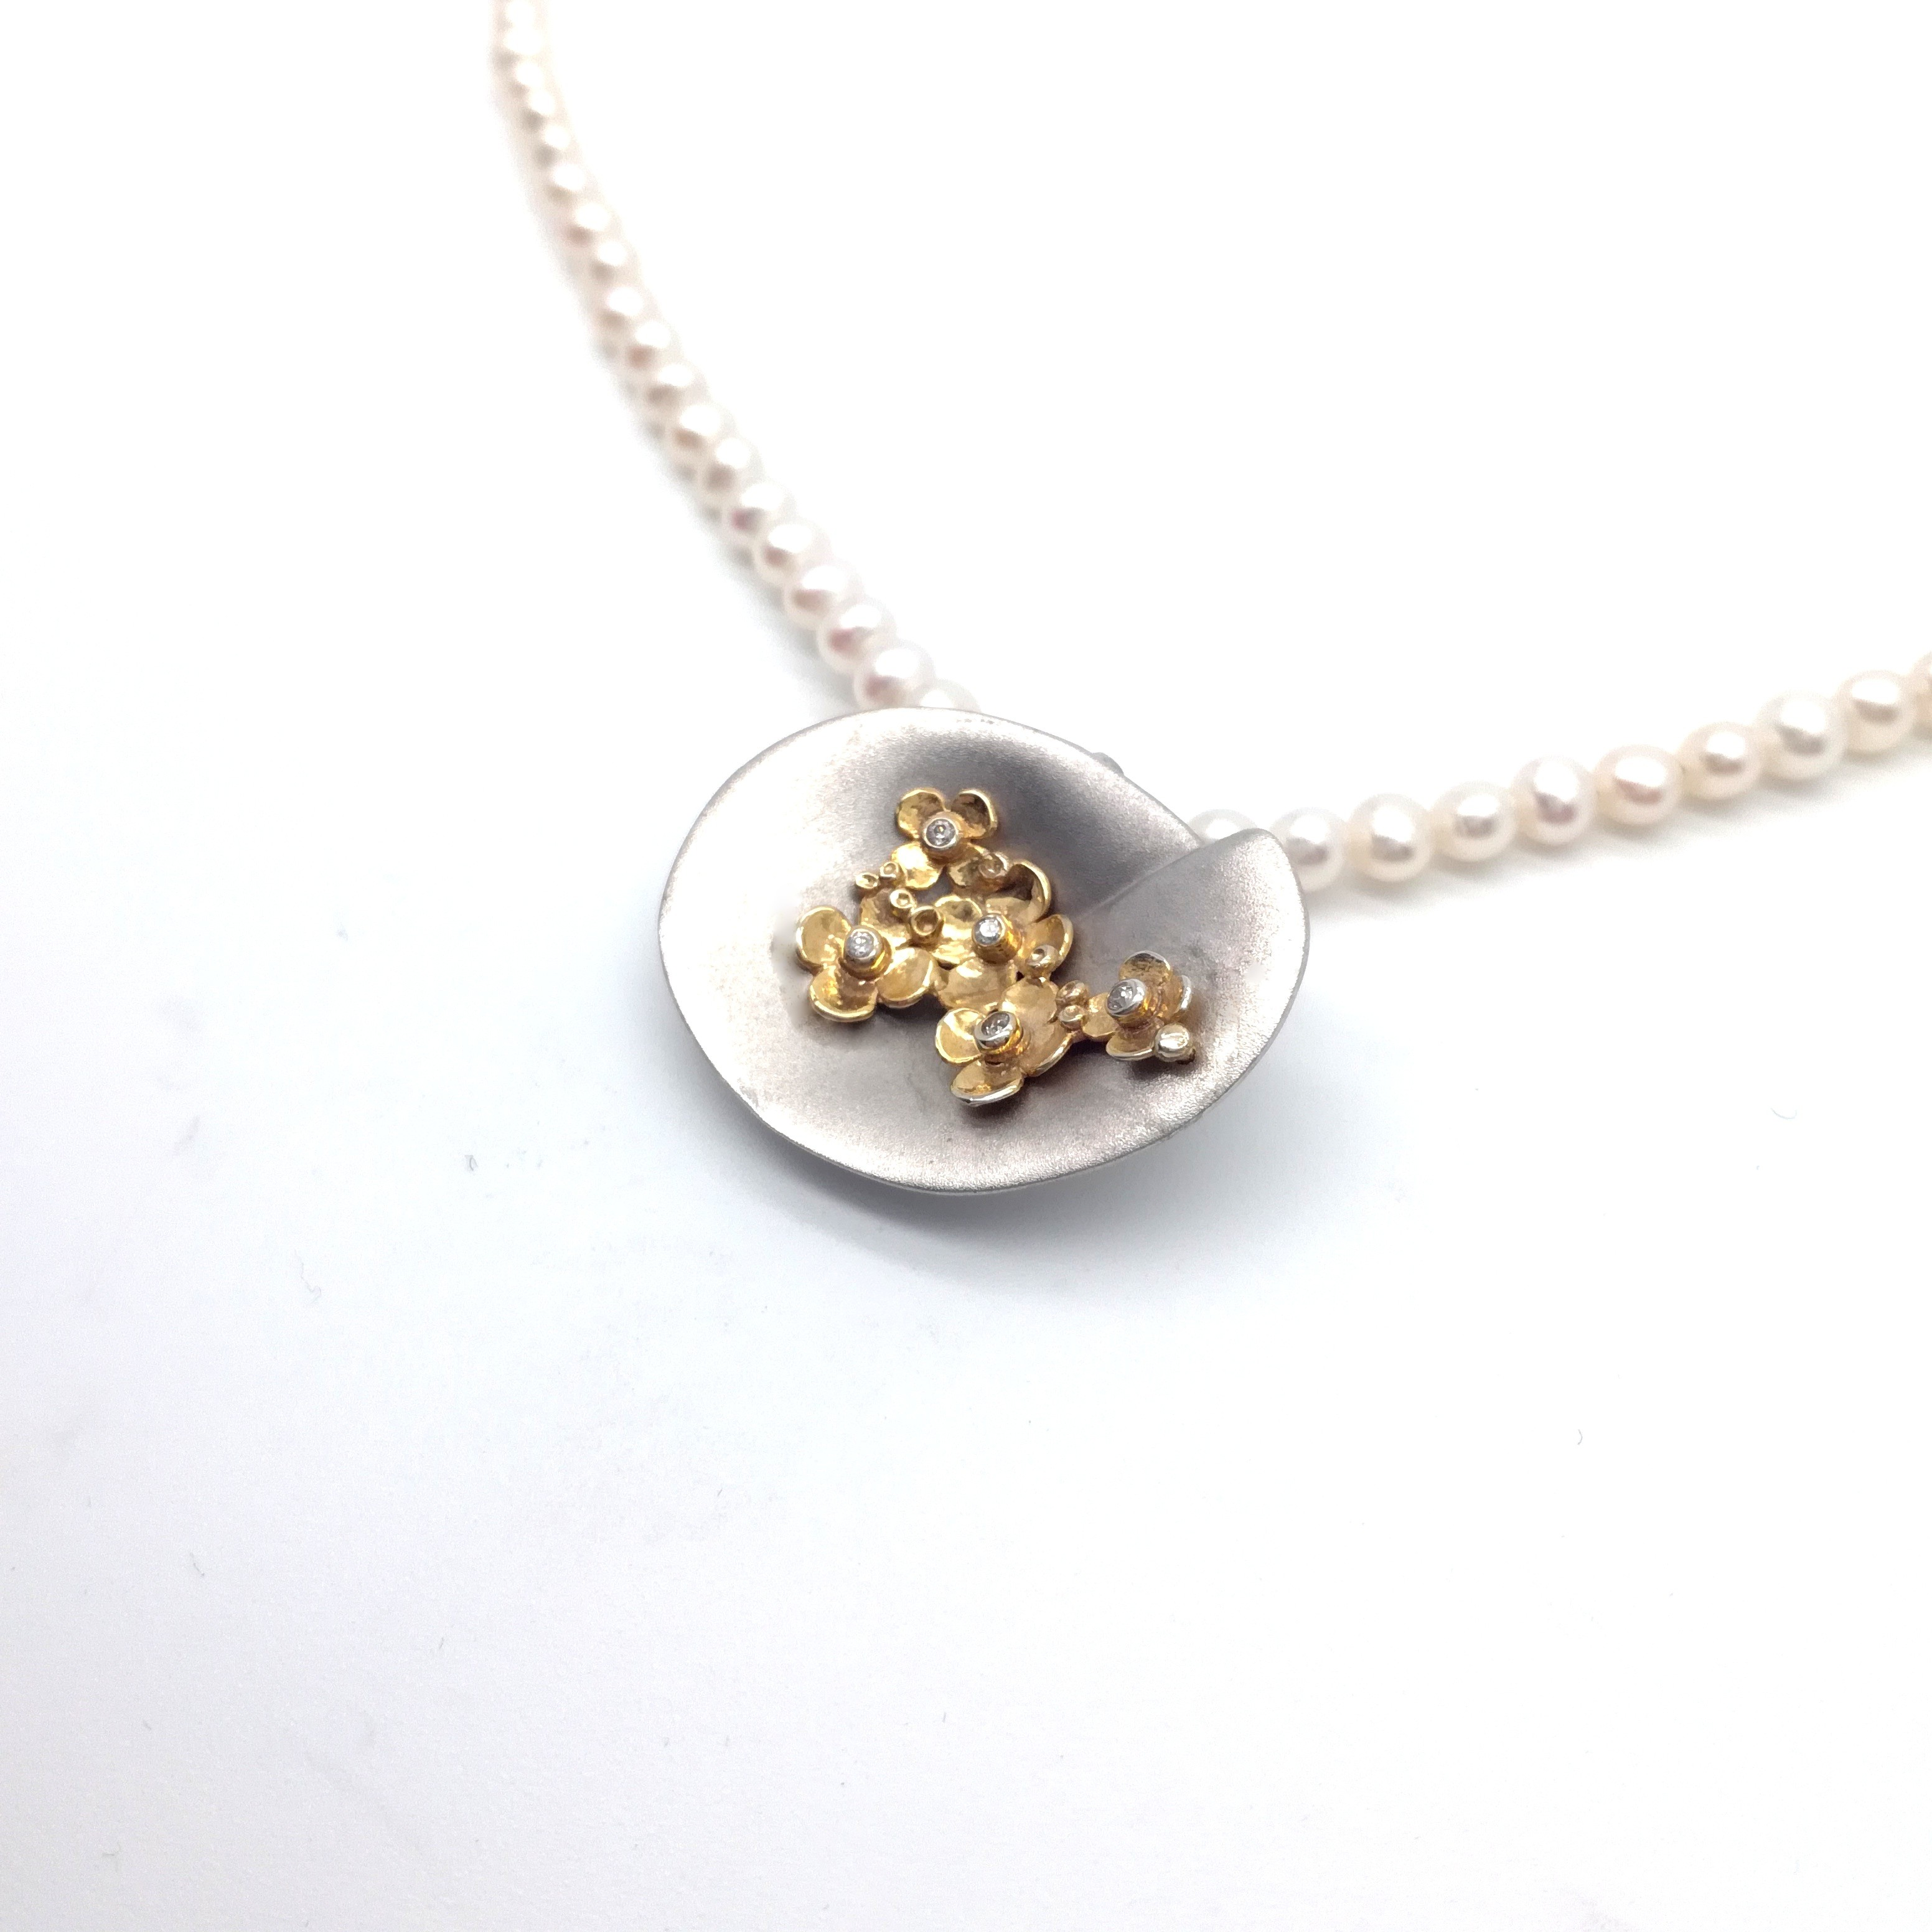 Silver necklace 925 rhodium and gold plated with pearl and synthetic stones